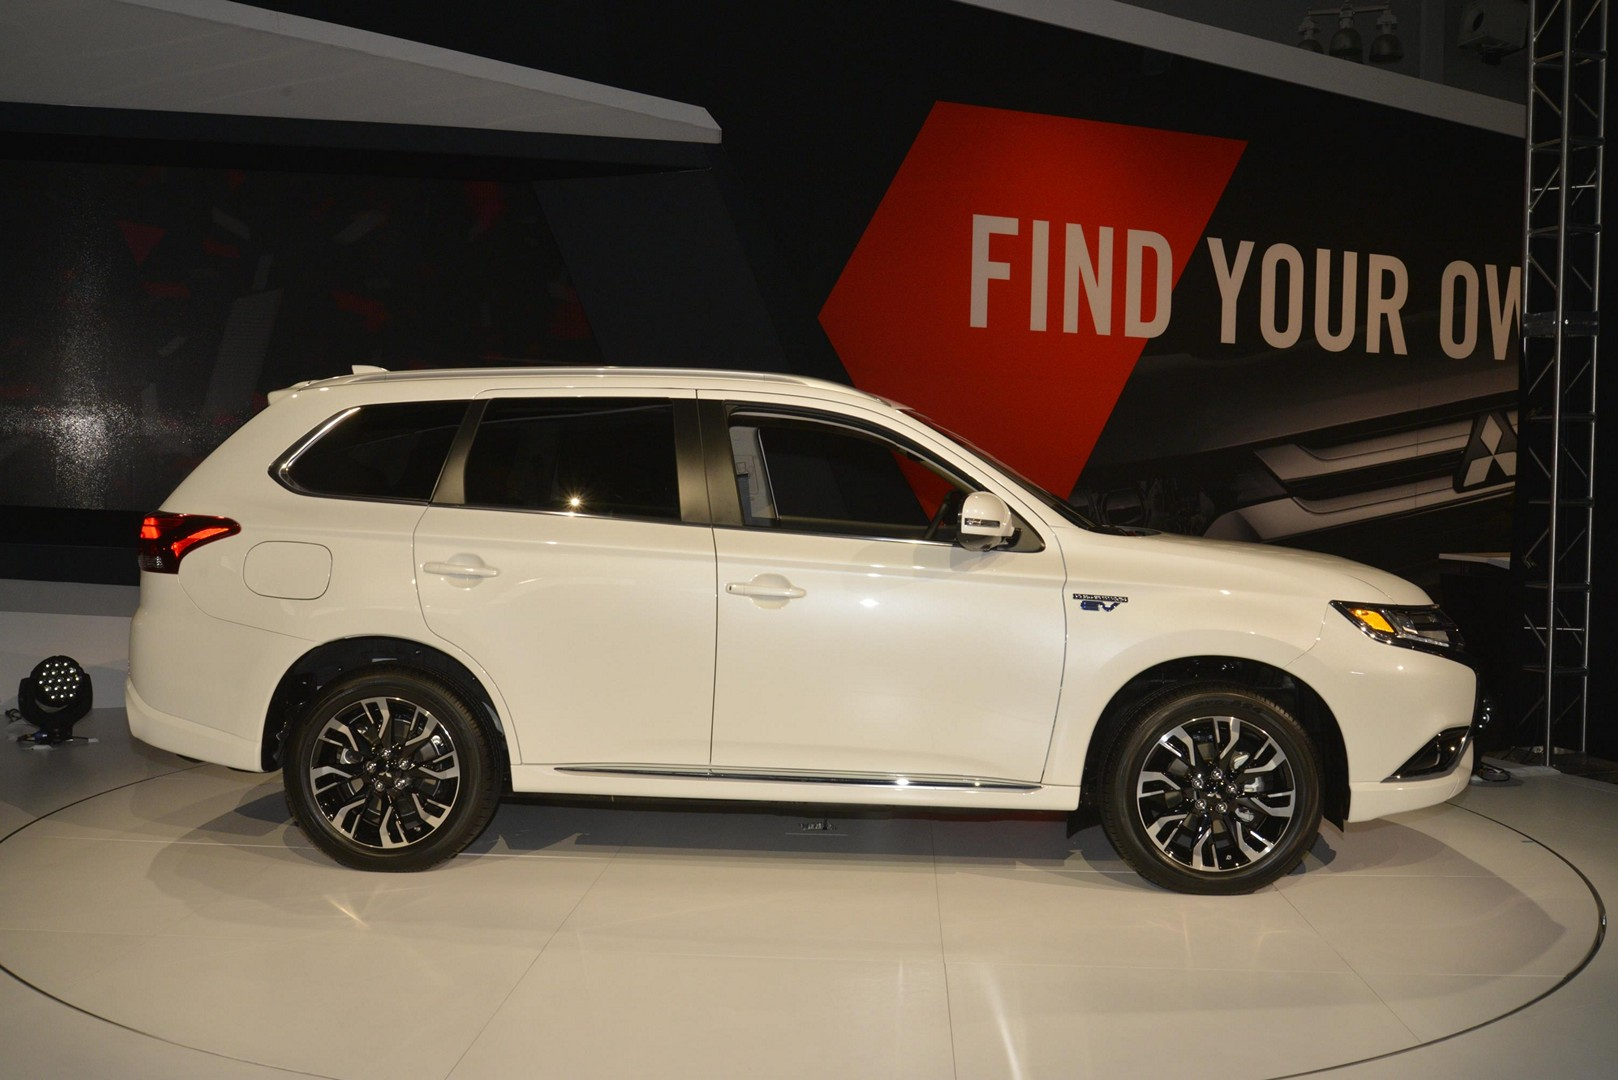 2018 mitsubishi outlander phev goes on sale in the u s 5 years after eu debut autoevolution. Black Bedroom Furniture Sets. Home Design Ideas